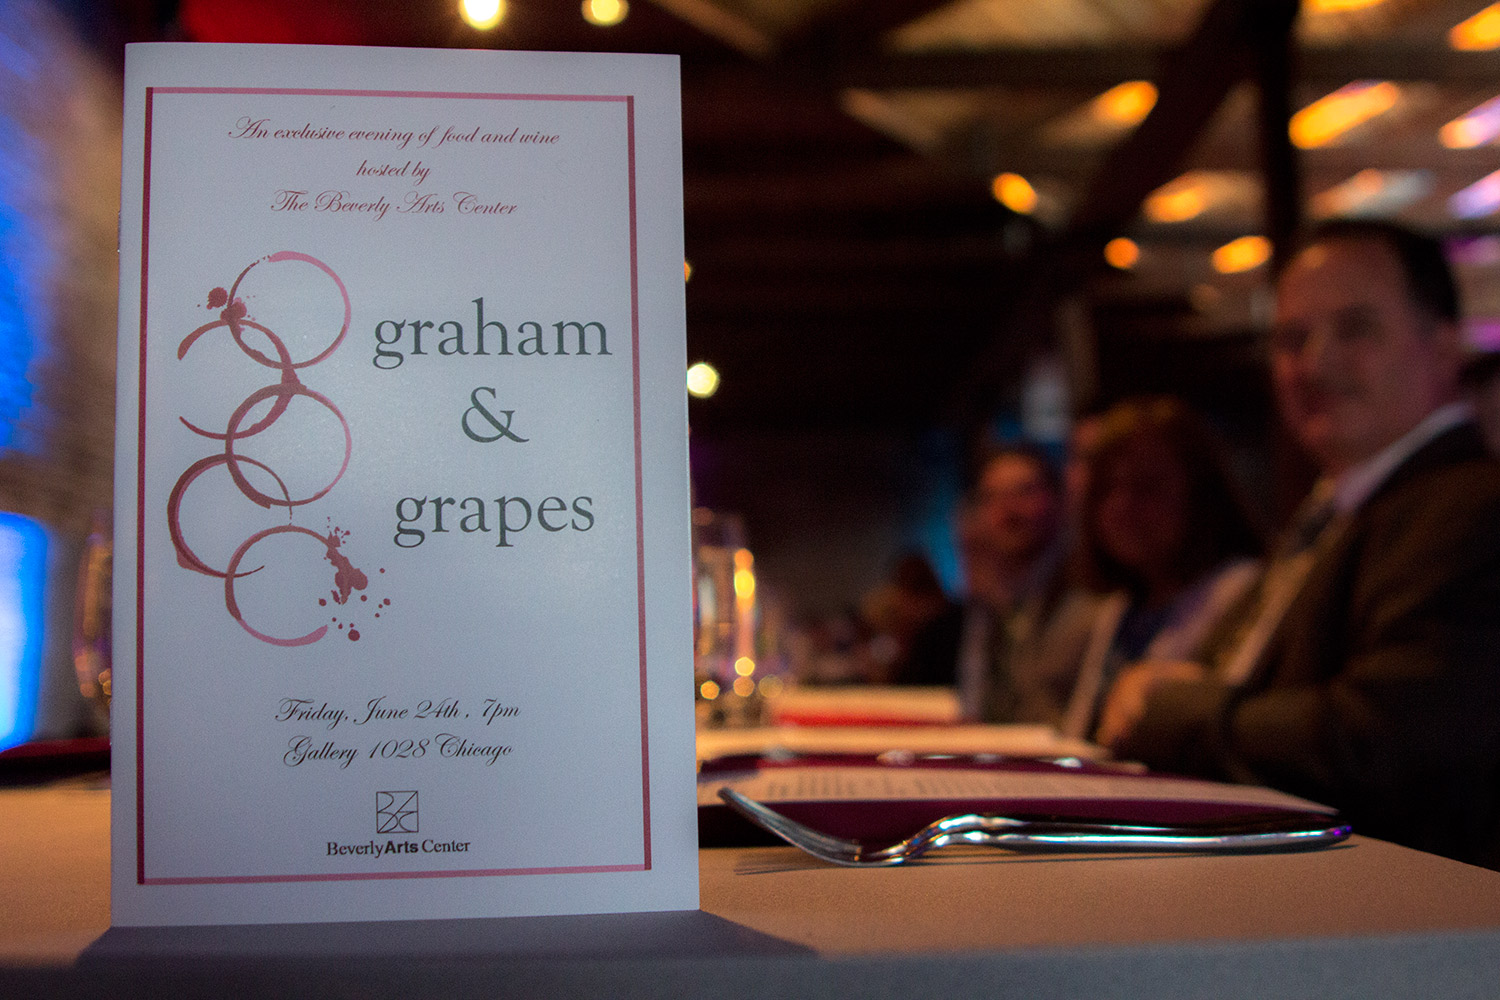 GrahamGrapes